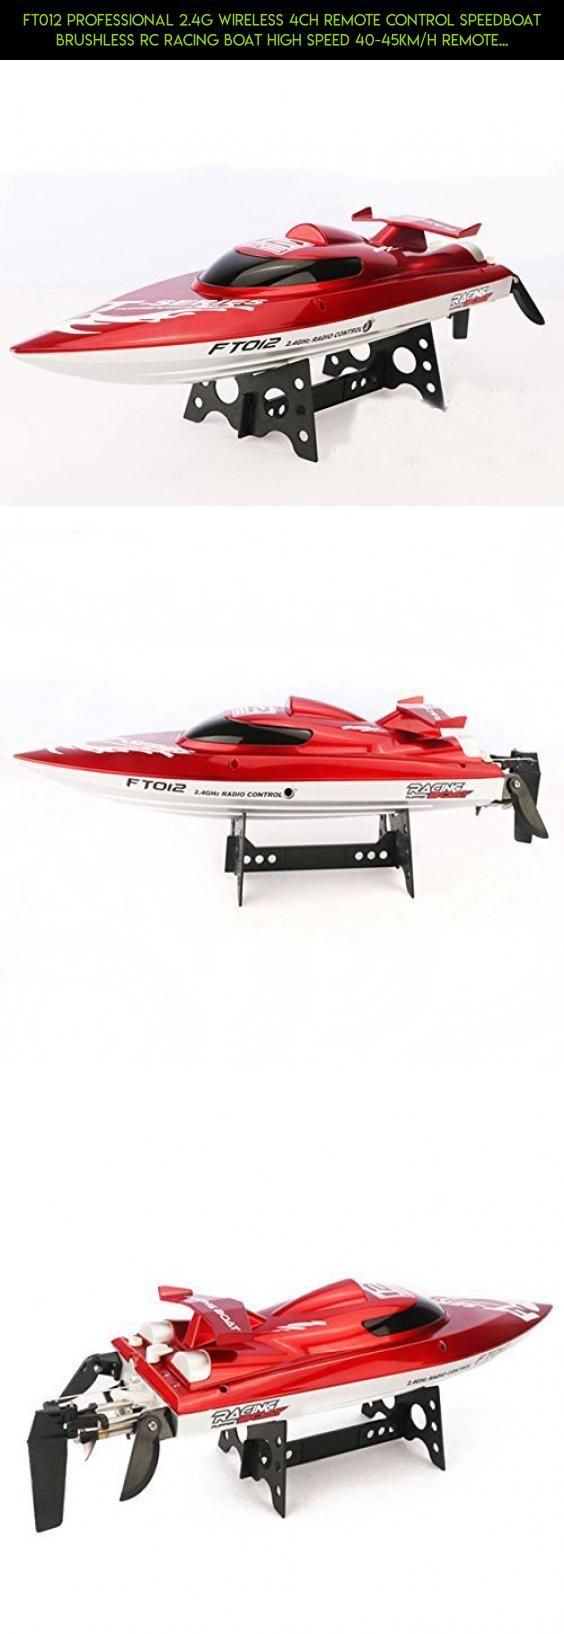 FT012 Professional 2.4G Wireless 4CH Remote Control Speedboat Brushless RC Racing Boat High Speed 40-45KM//H Remote Control Model Red